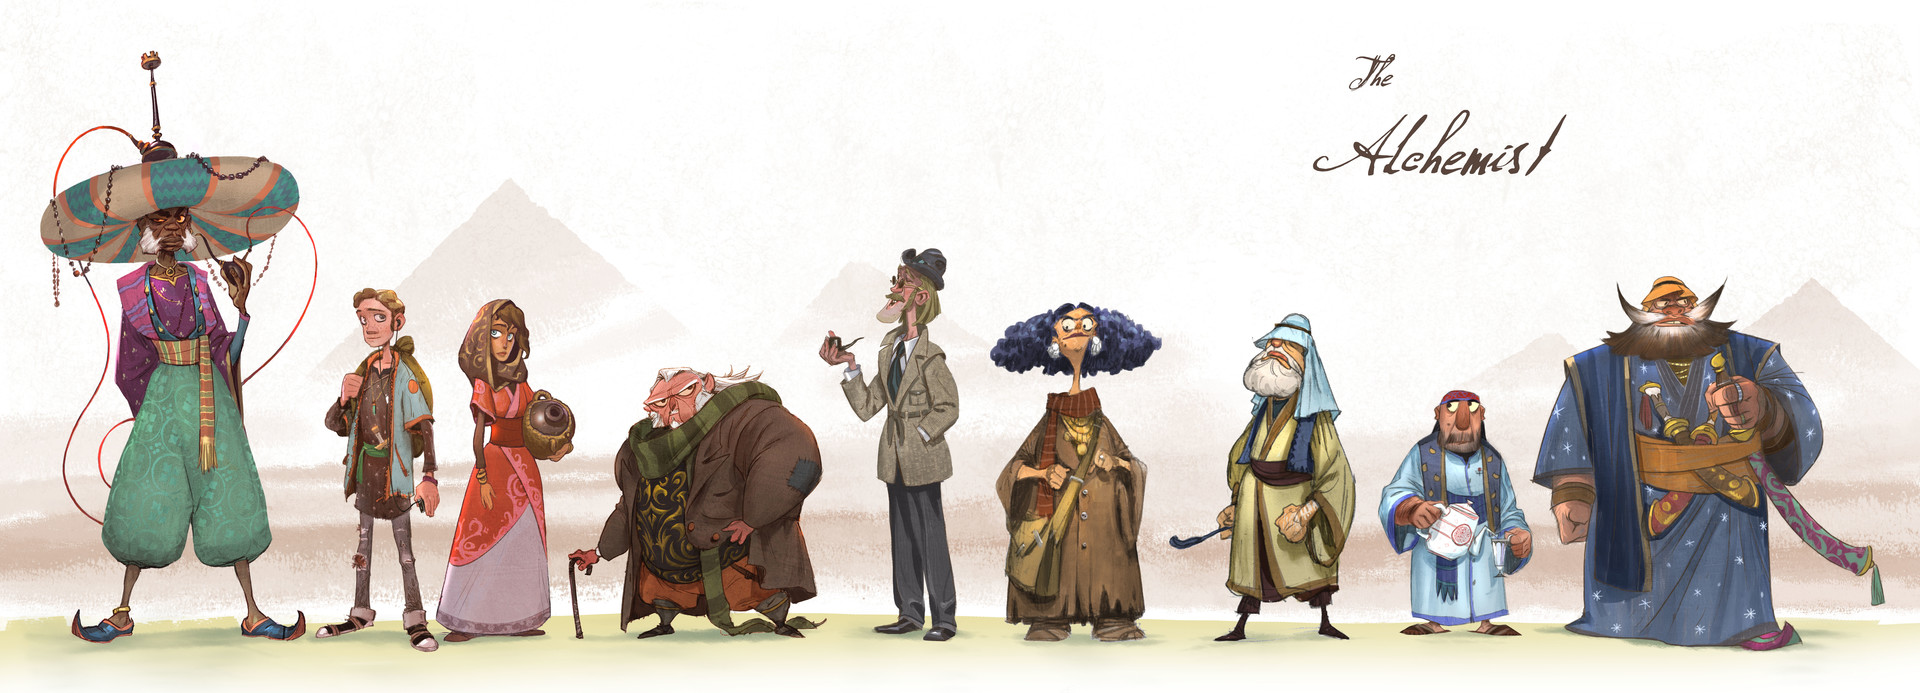 The Alchemist, character line up